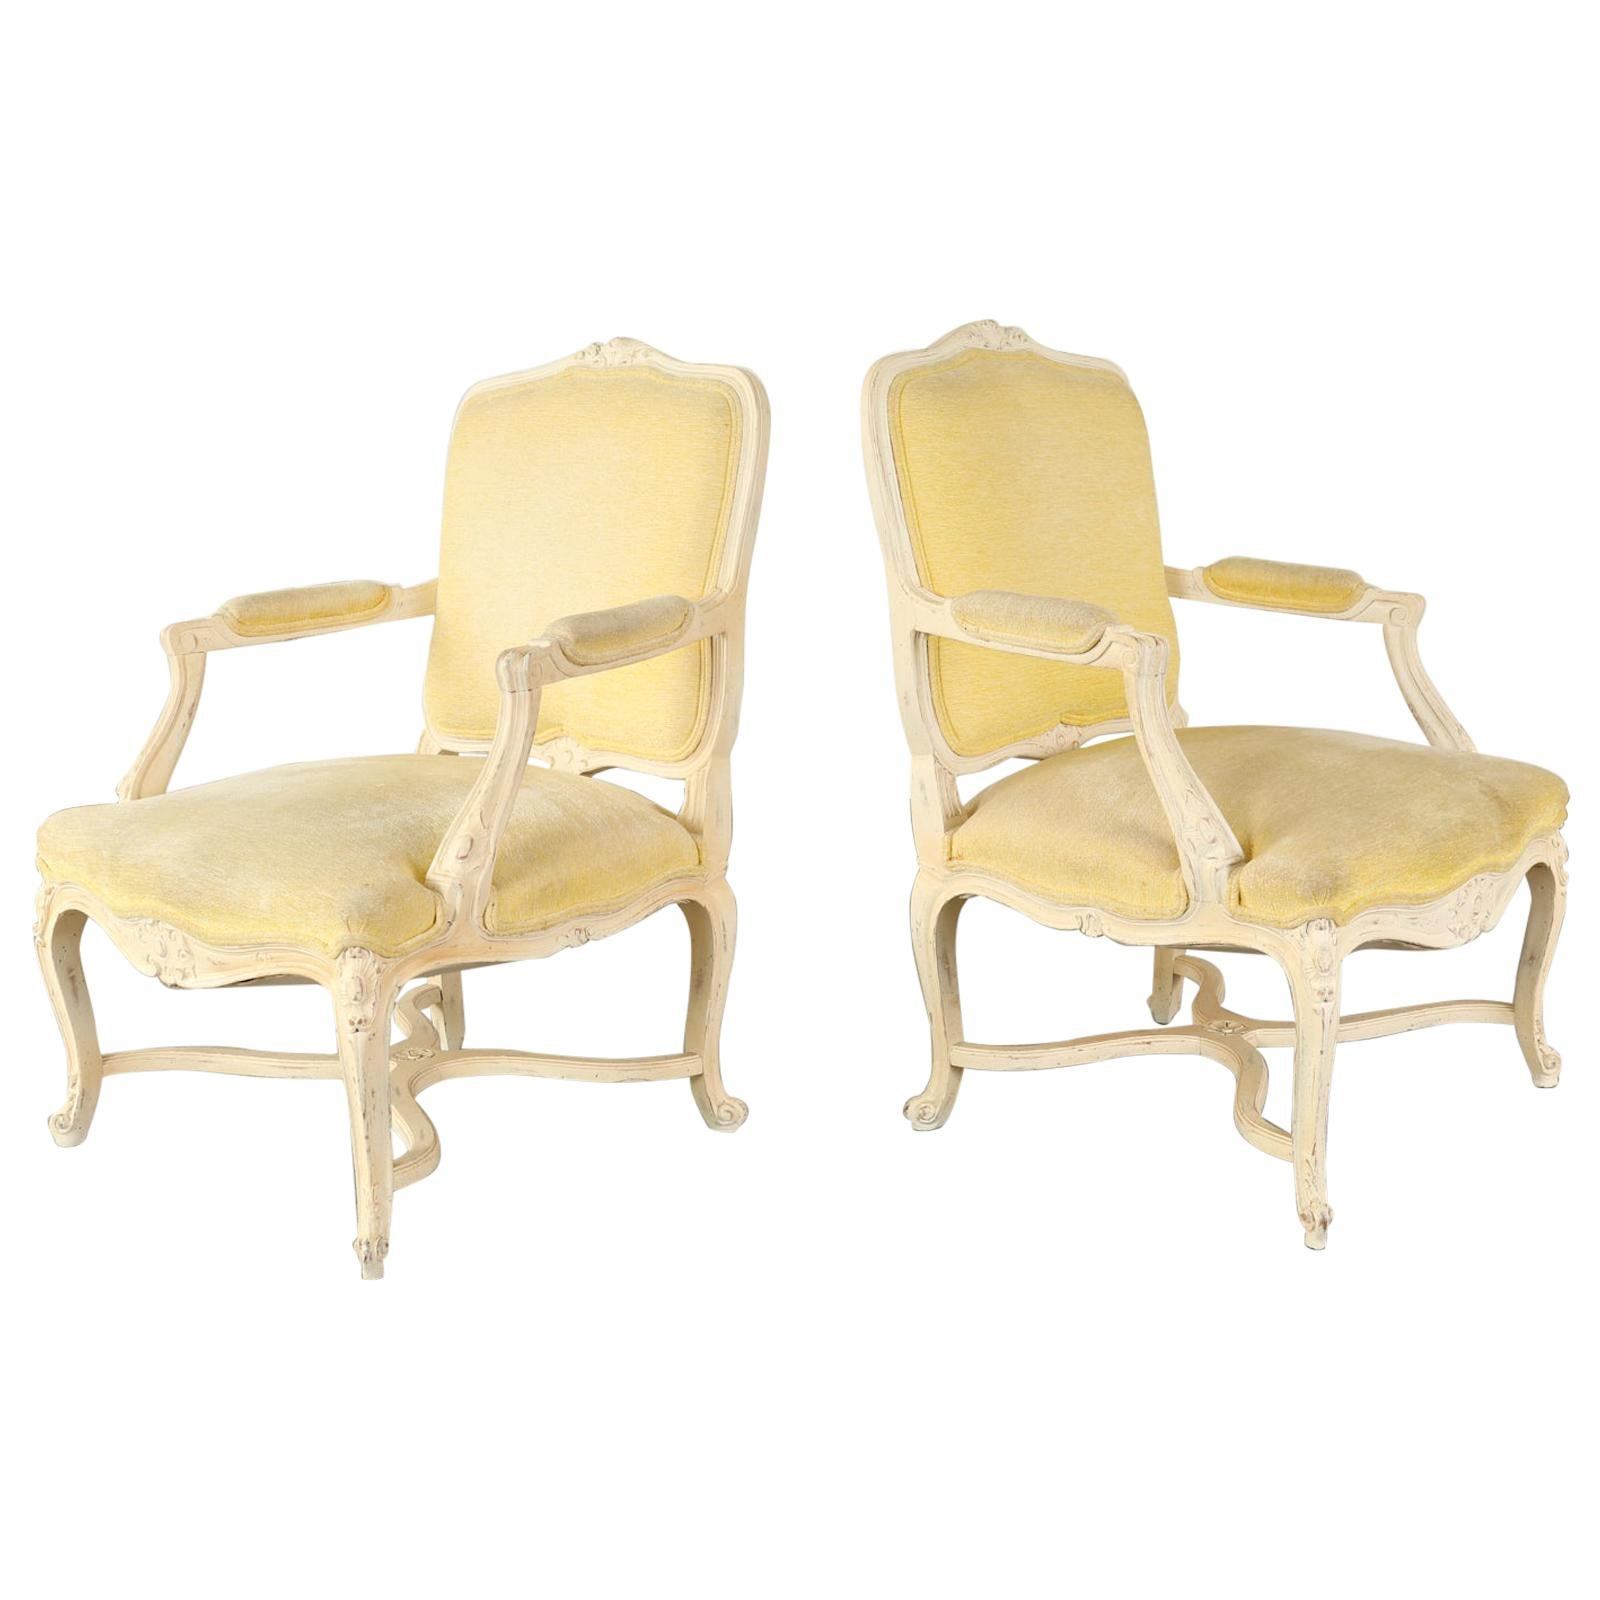 Pair of French Louis XV Style Painted Fauteuil Armchairs